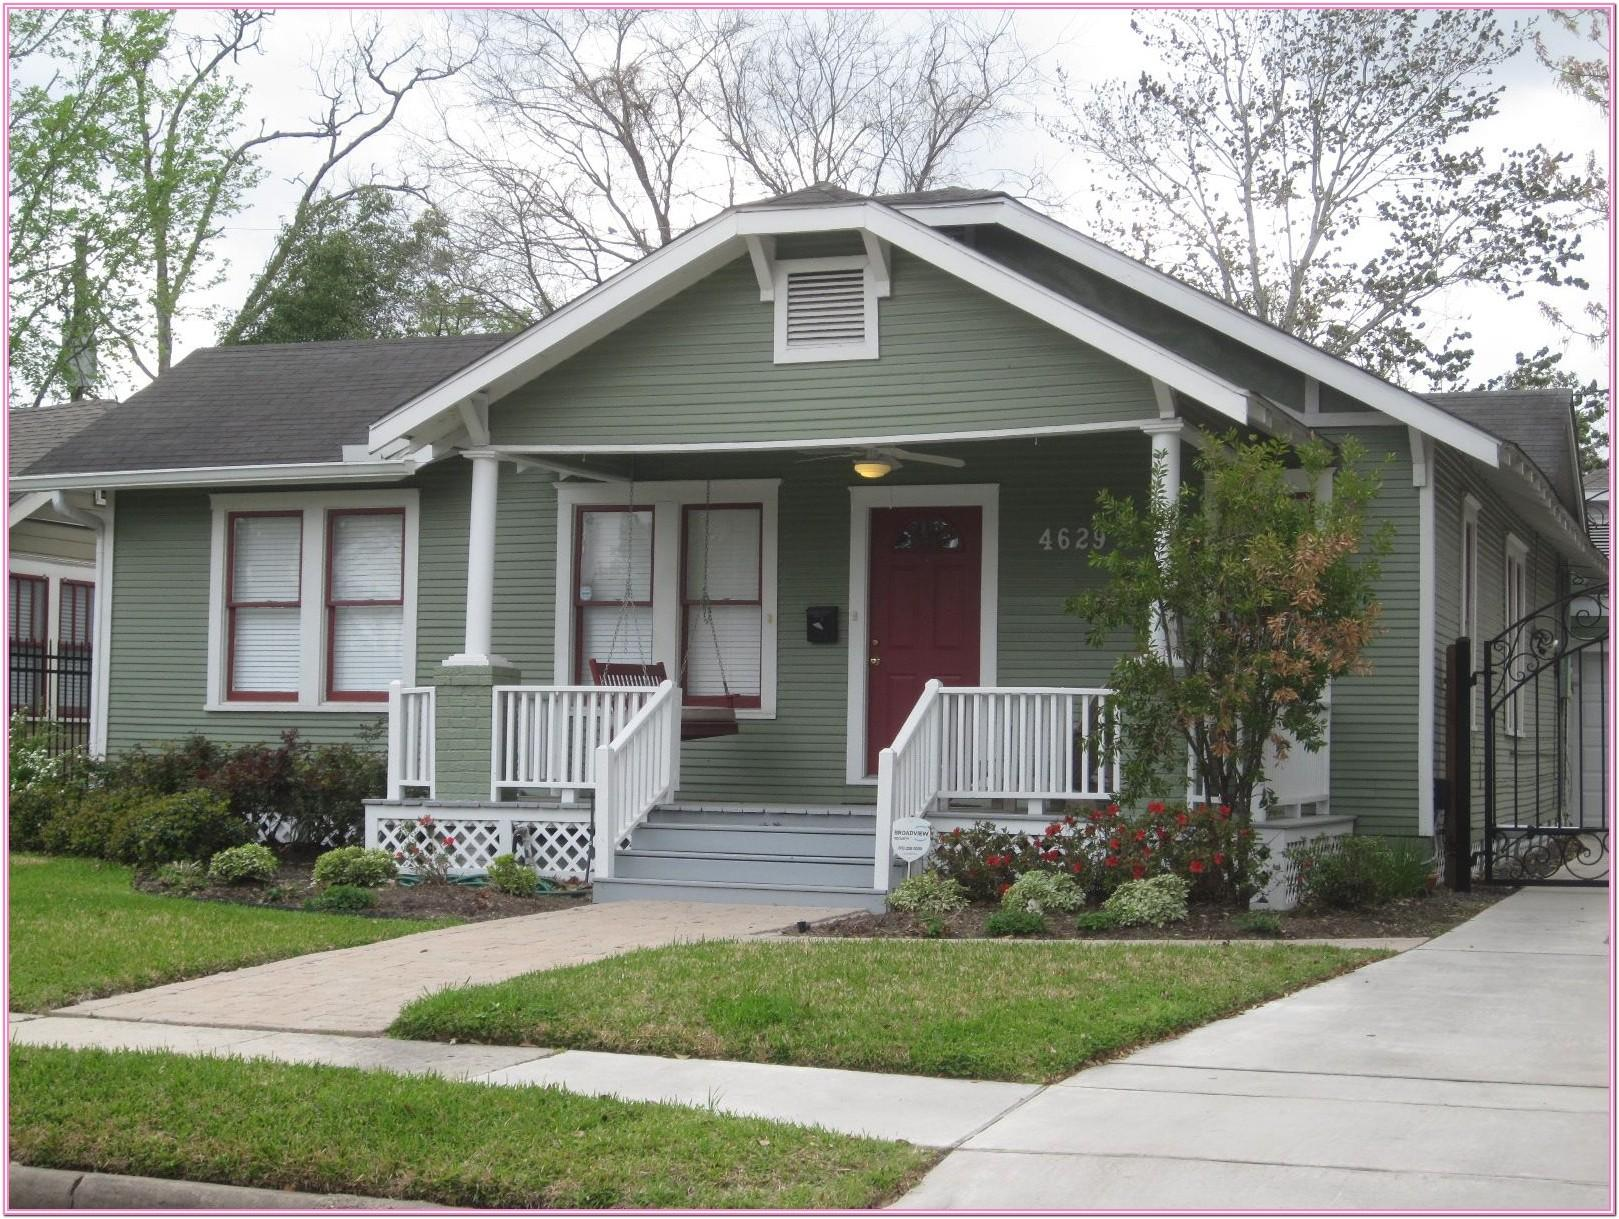 Bungalow Exterior Paint Colors